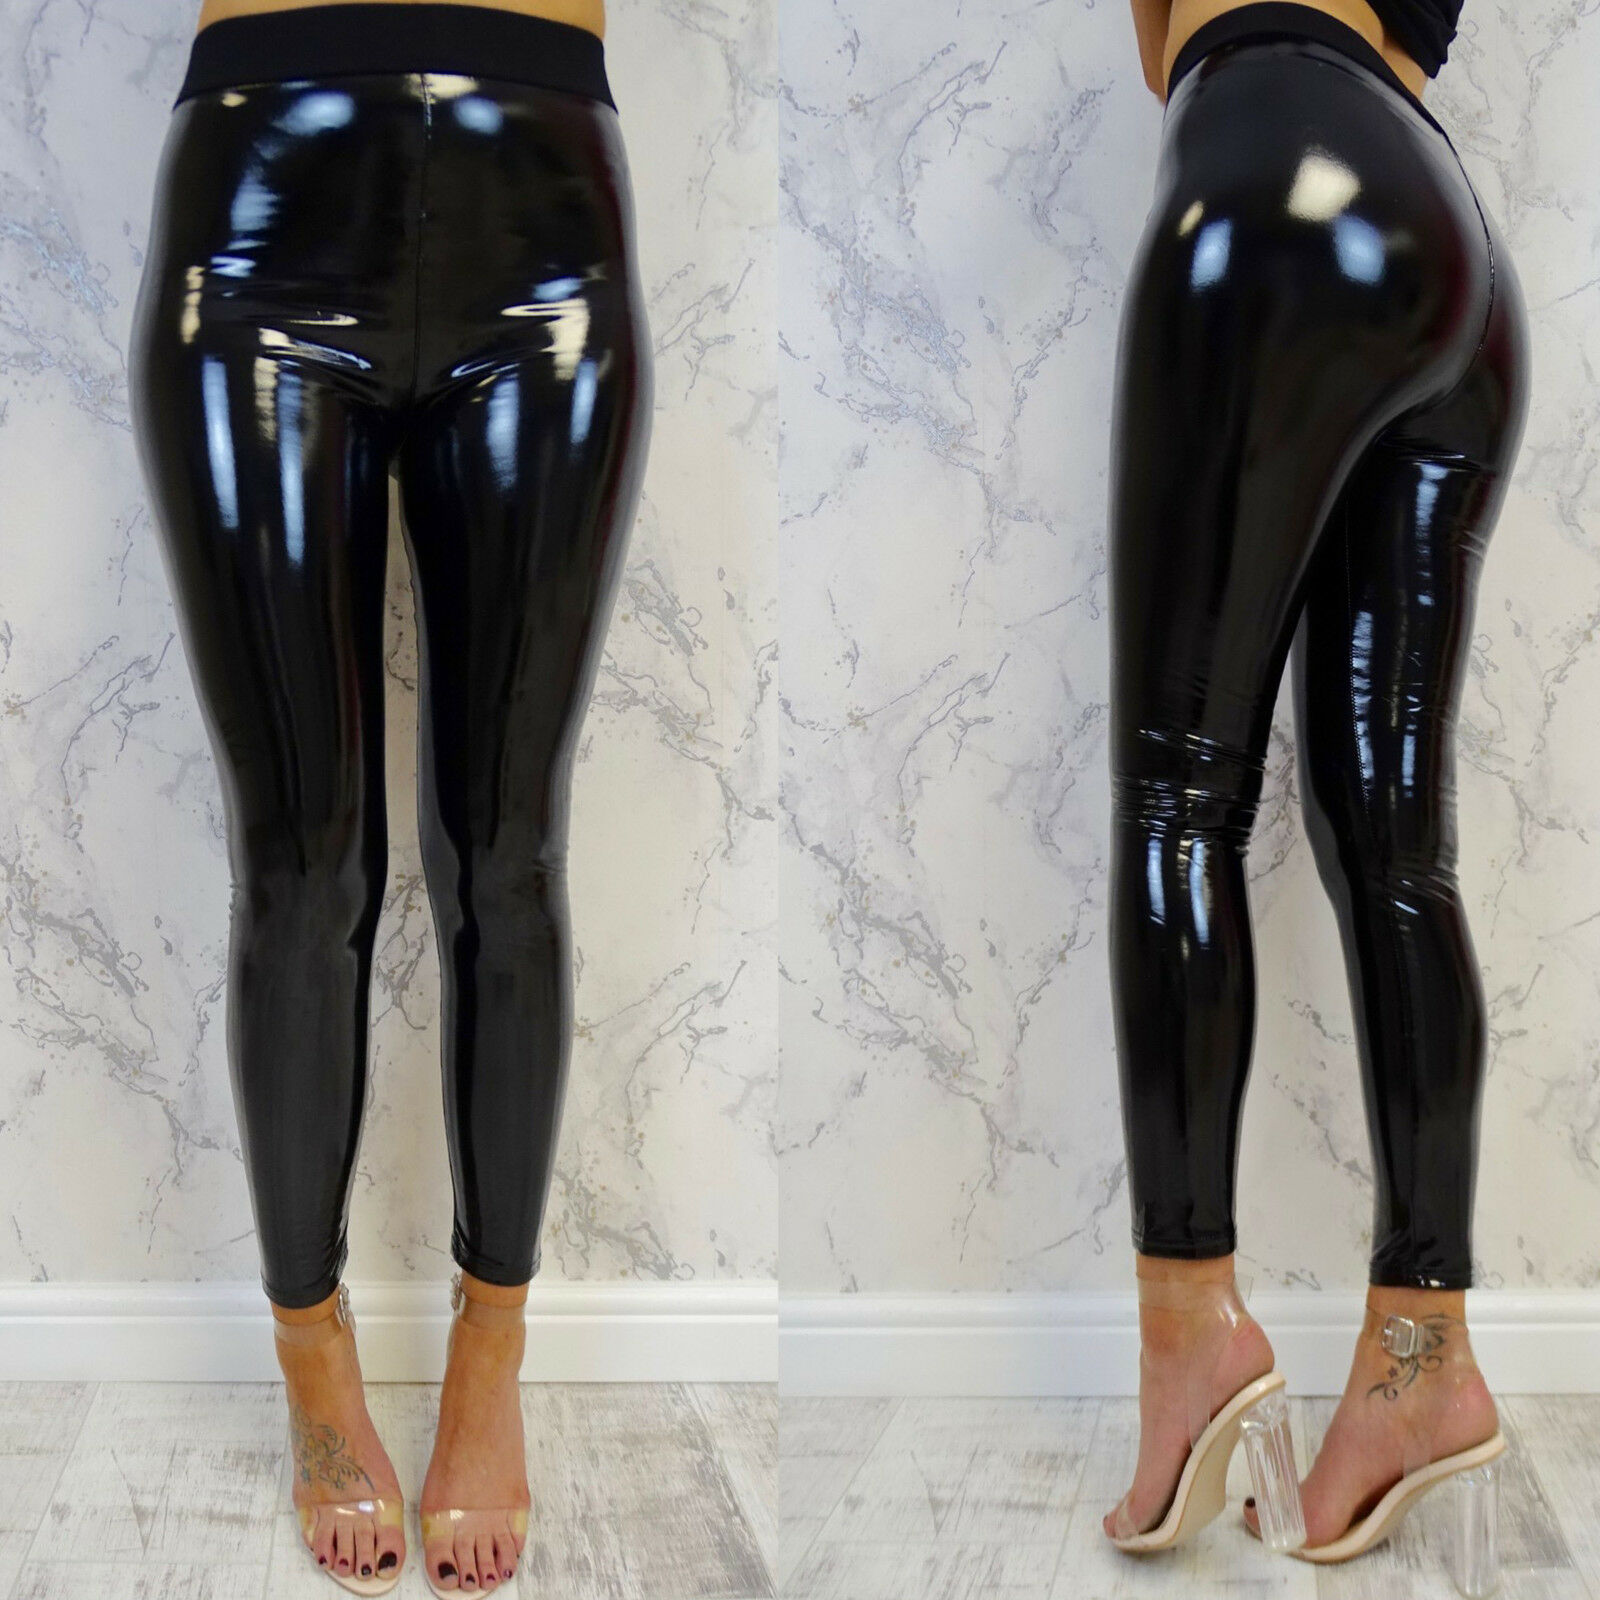 Women Ladies Vinyl PVC Wet Look Shiny Disco Slim Soft Stretchy Faux Leather Elasticated High Waist Leggings Pencil Pant image